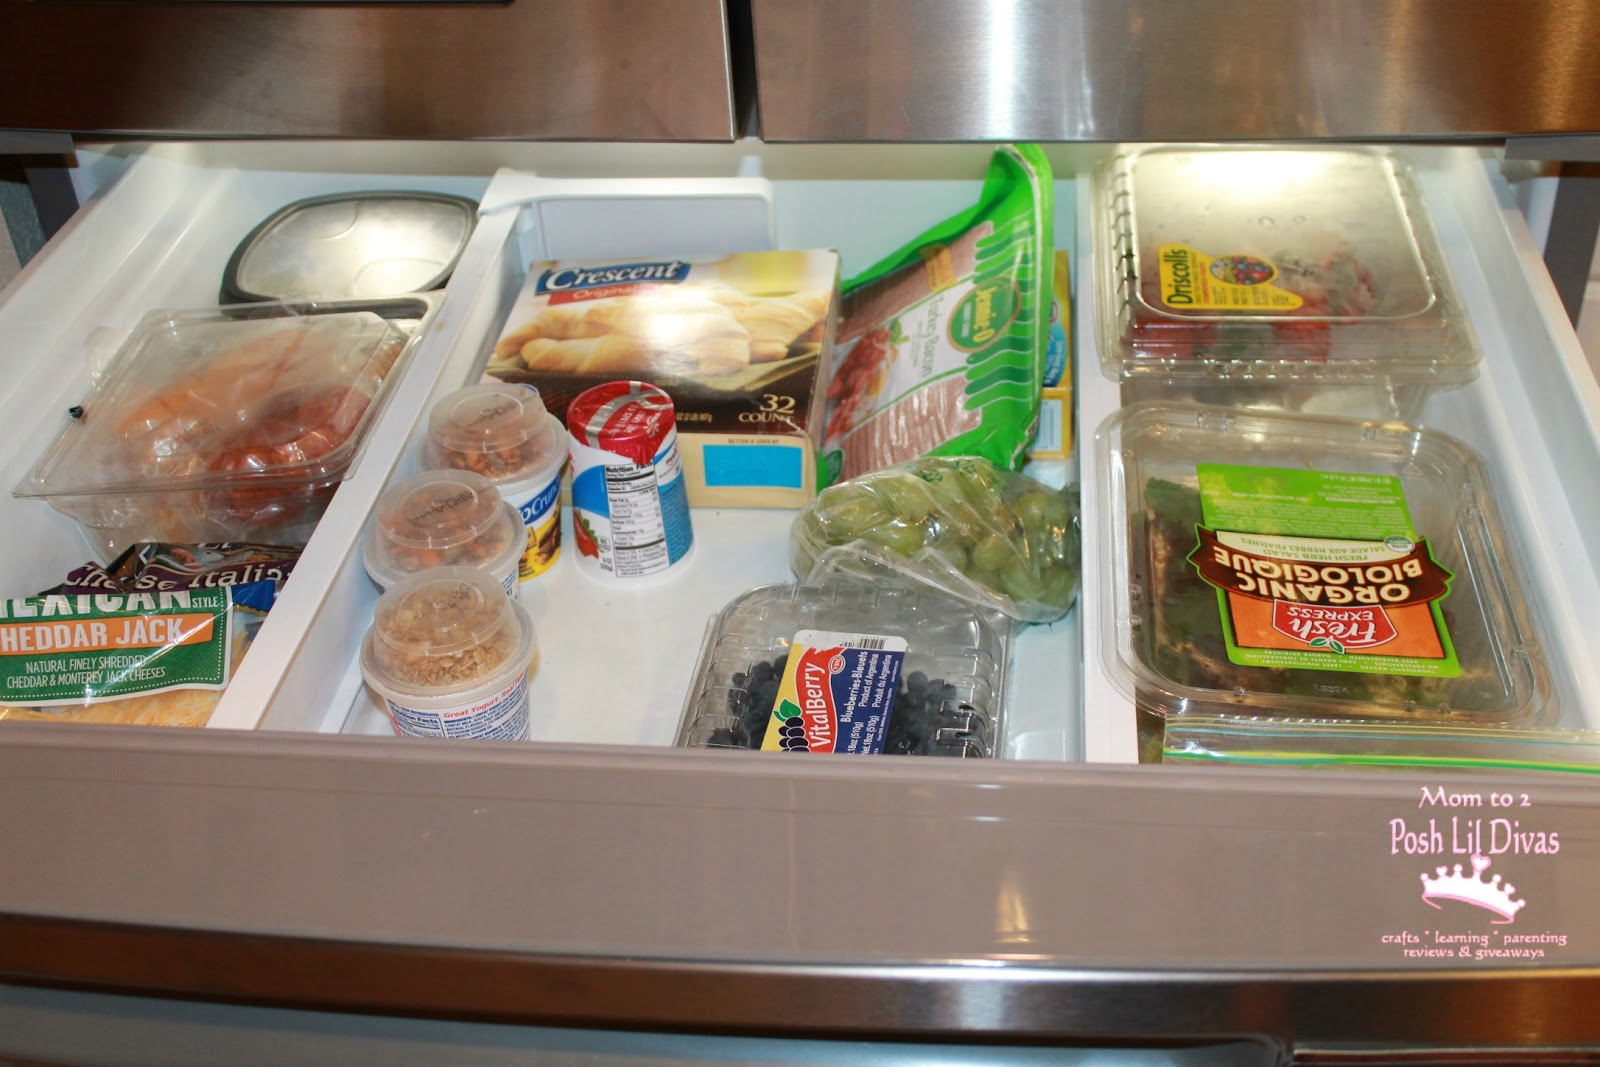 Maytag french door refrigerator reviews - One Of My Favorite Features Of The Ice20 French Door Refrigerator Is The Easy Access Drawer All Our Fruits Veggies Yogurt Cheeses And Even Some Juice